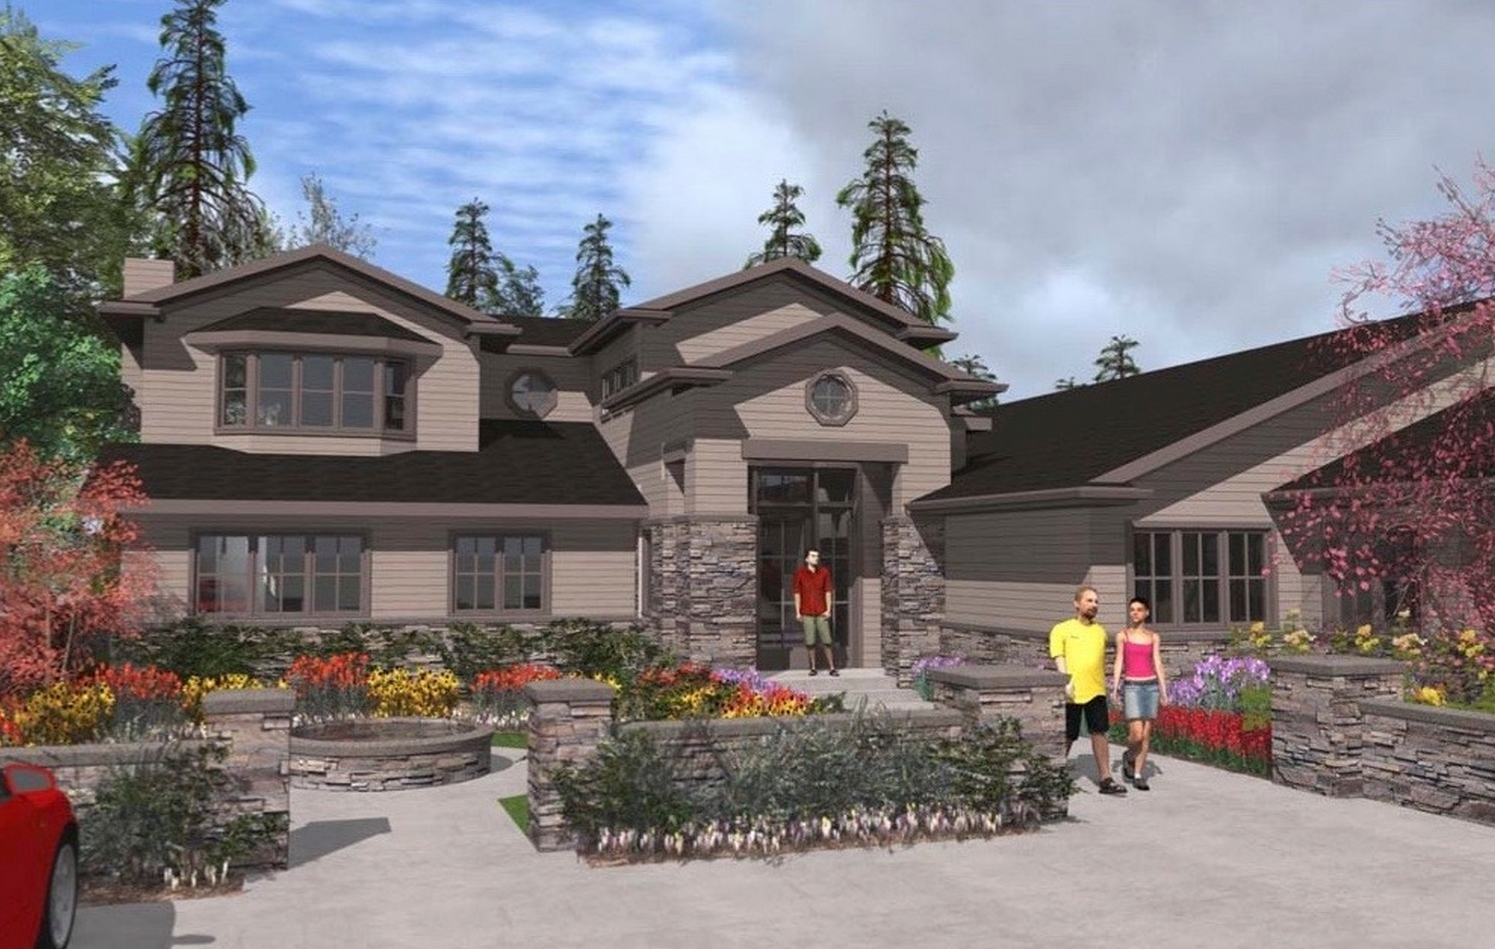 Rendering #2 - 12 Olympic Drive NW, Seattle